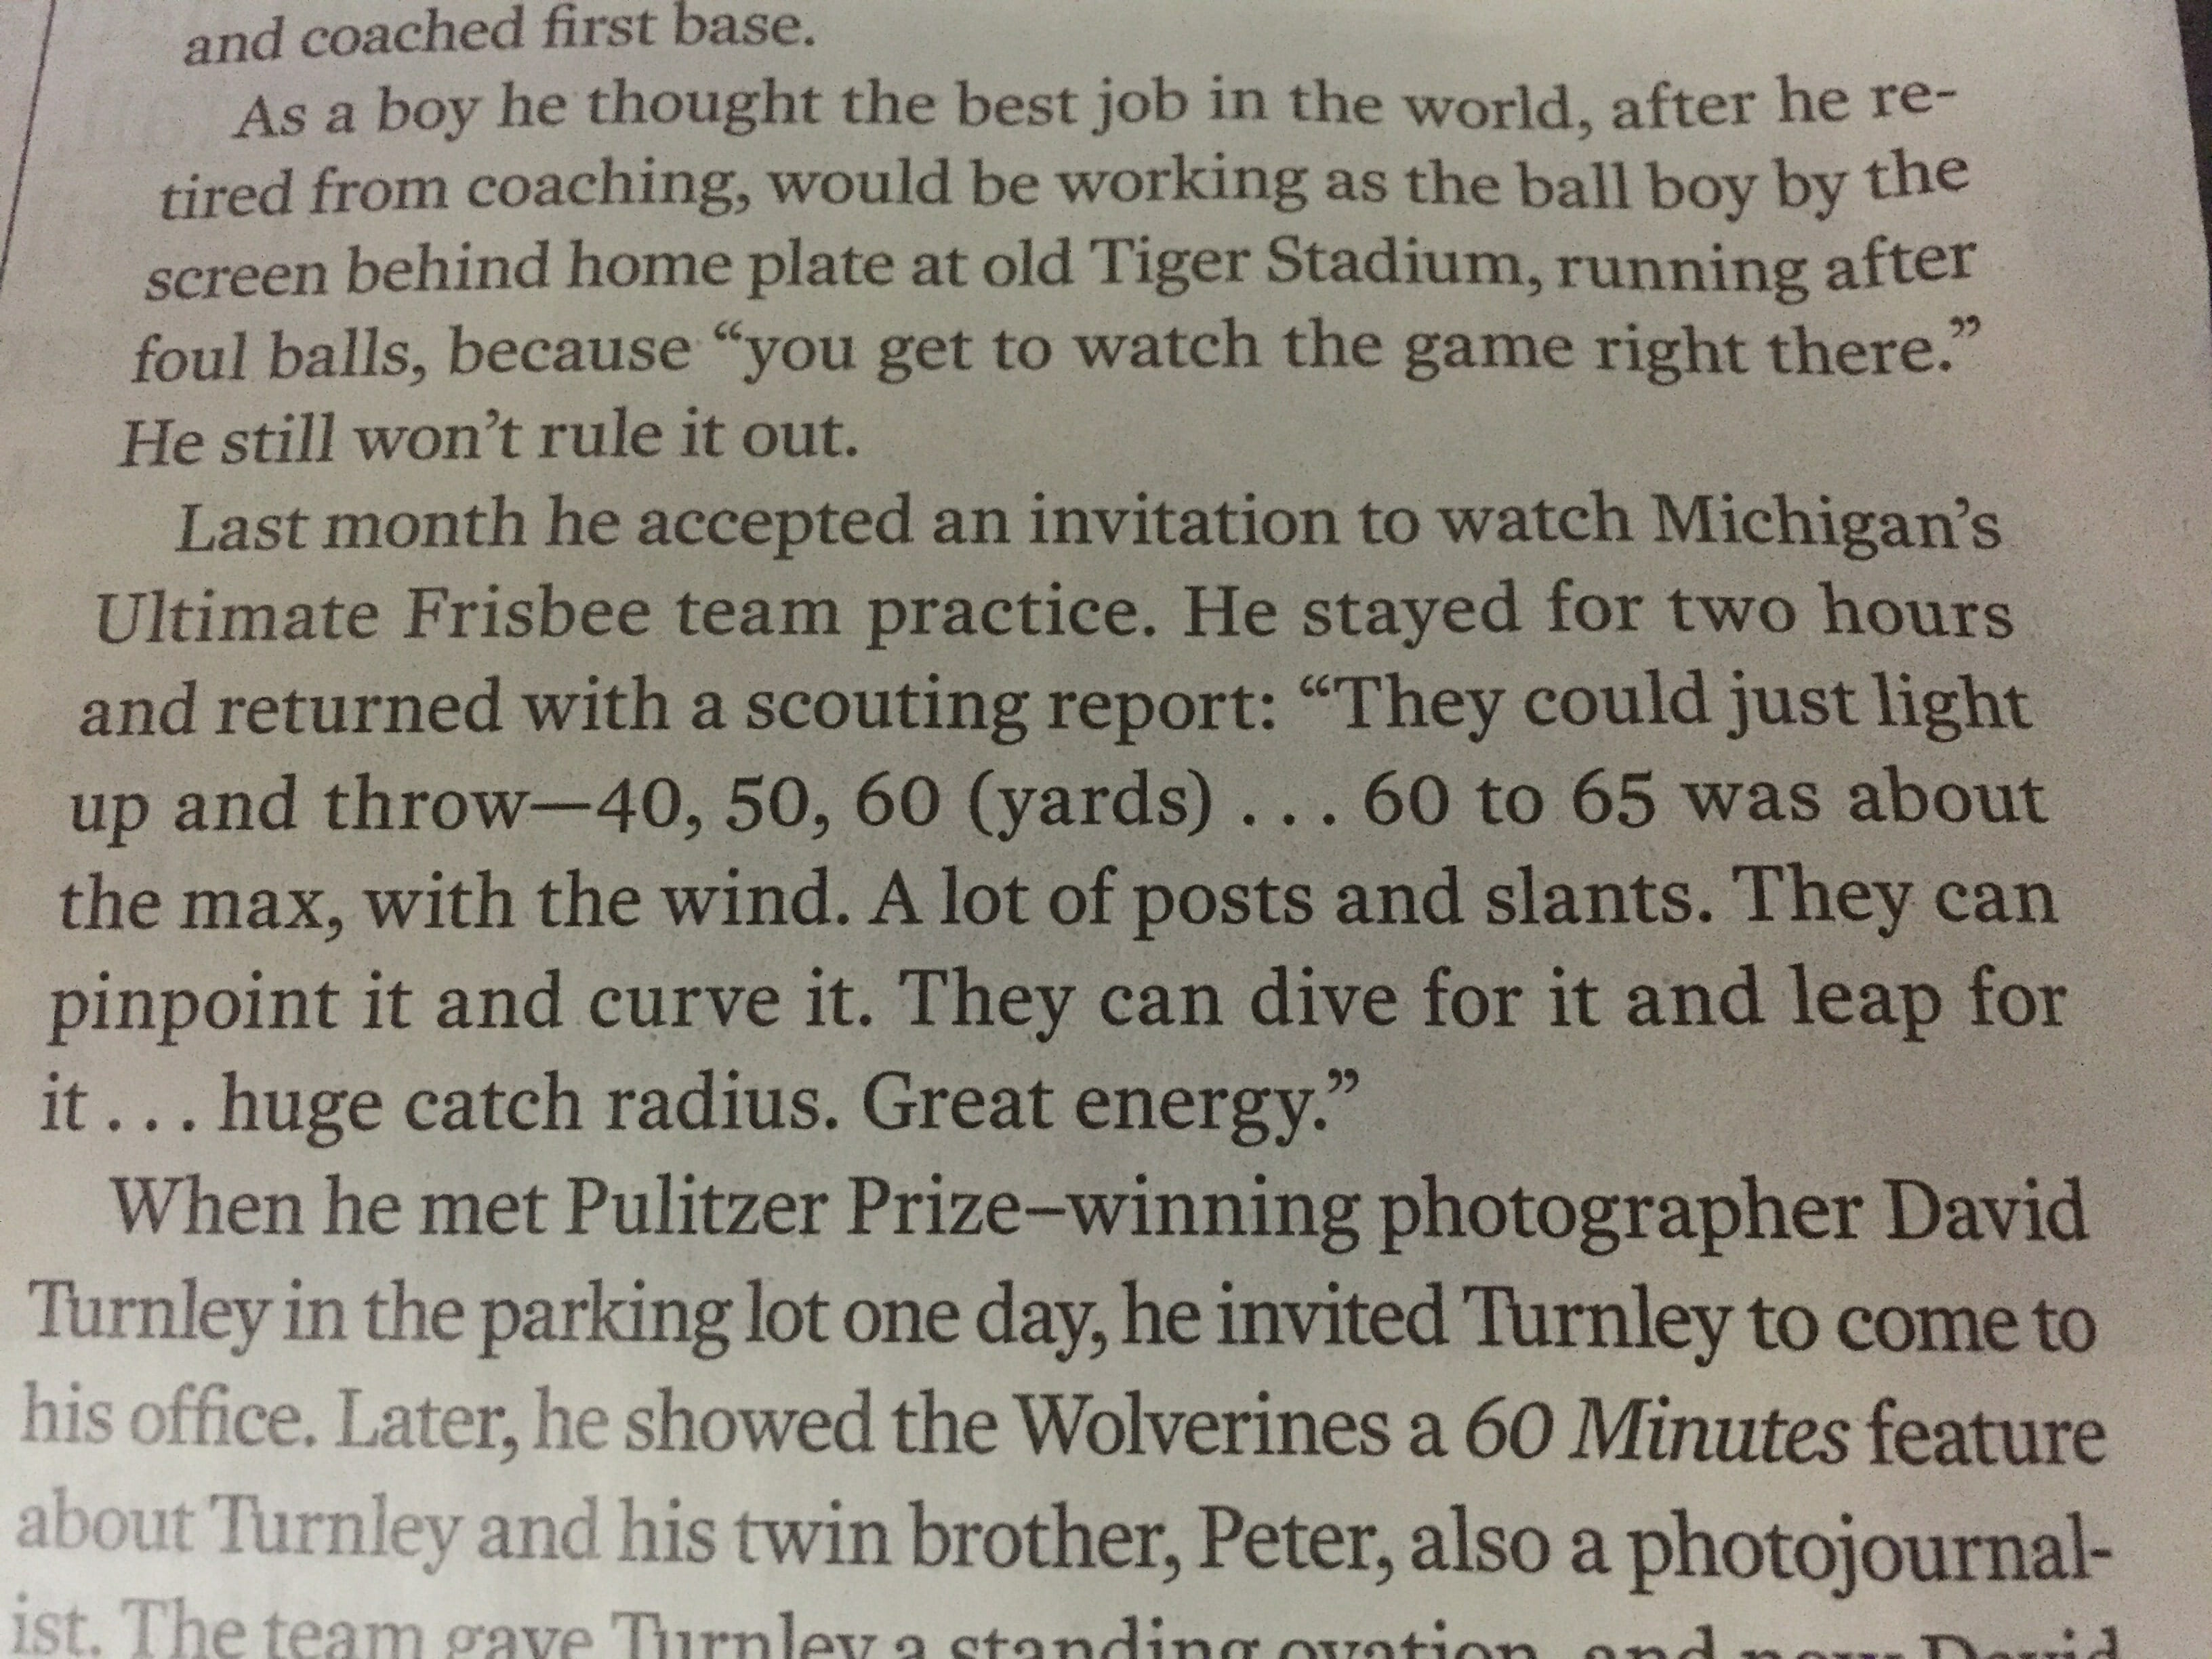 Jim Harbaugh Scouting Report on Ultimate Frisbee